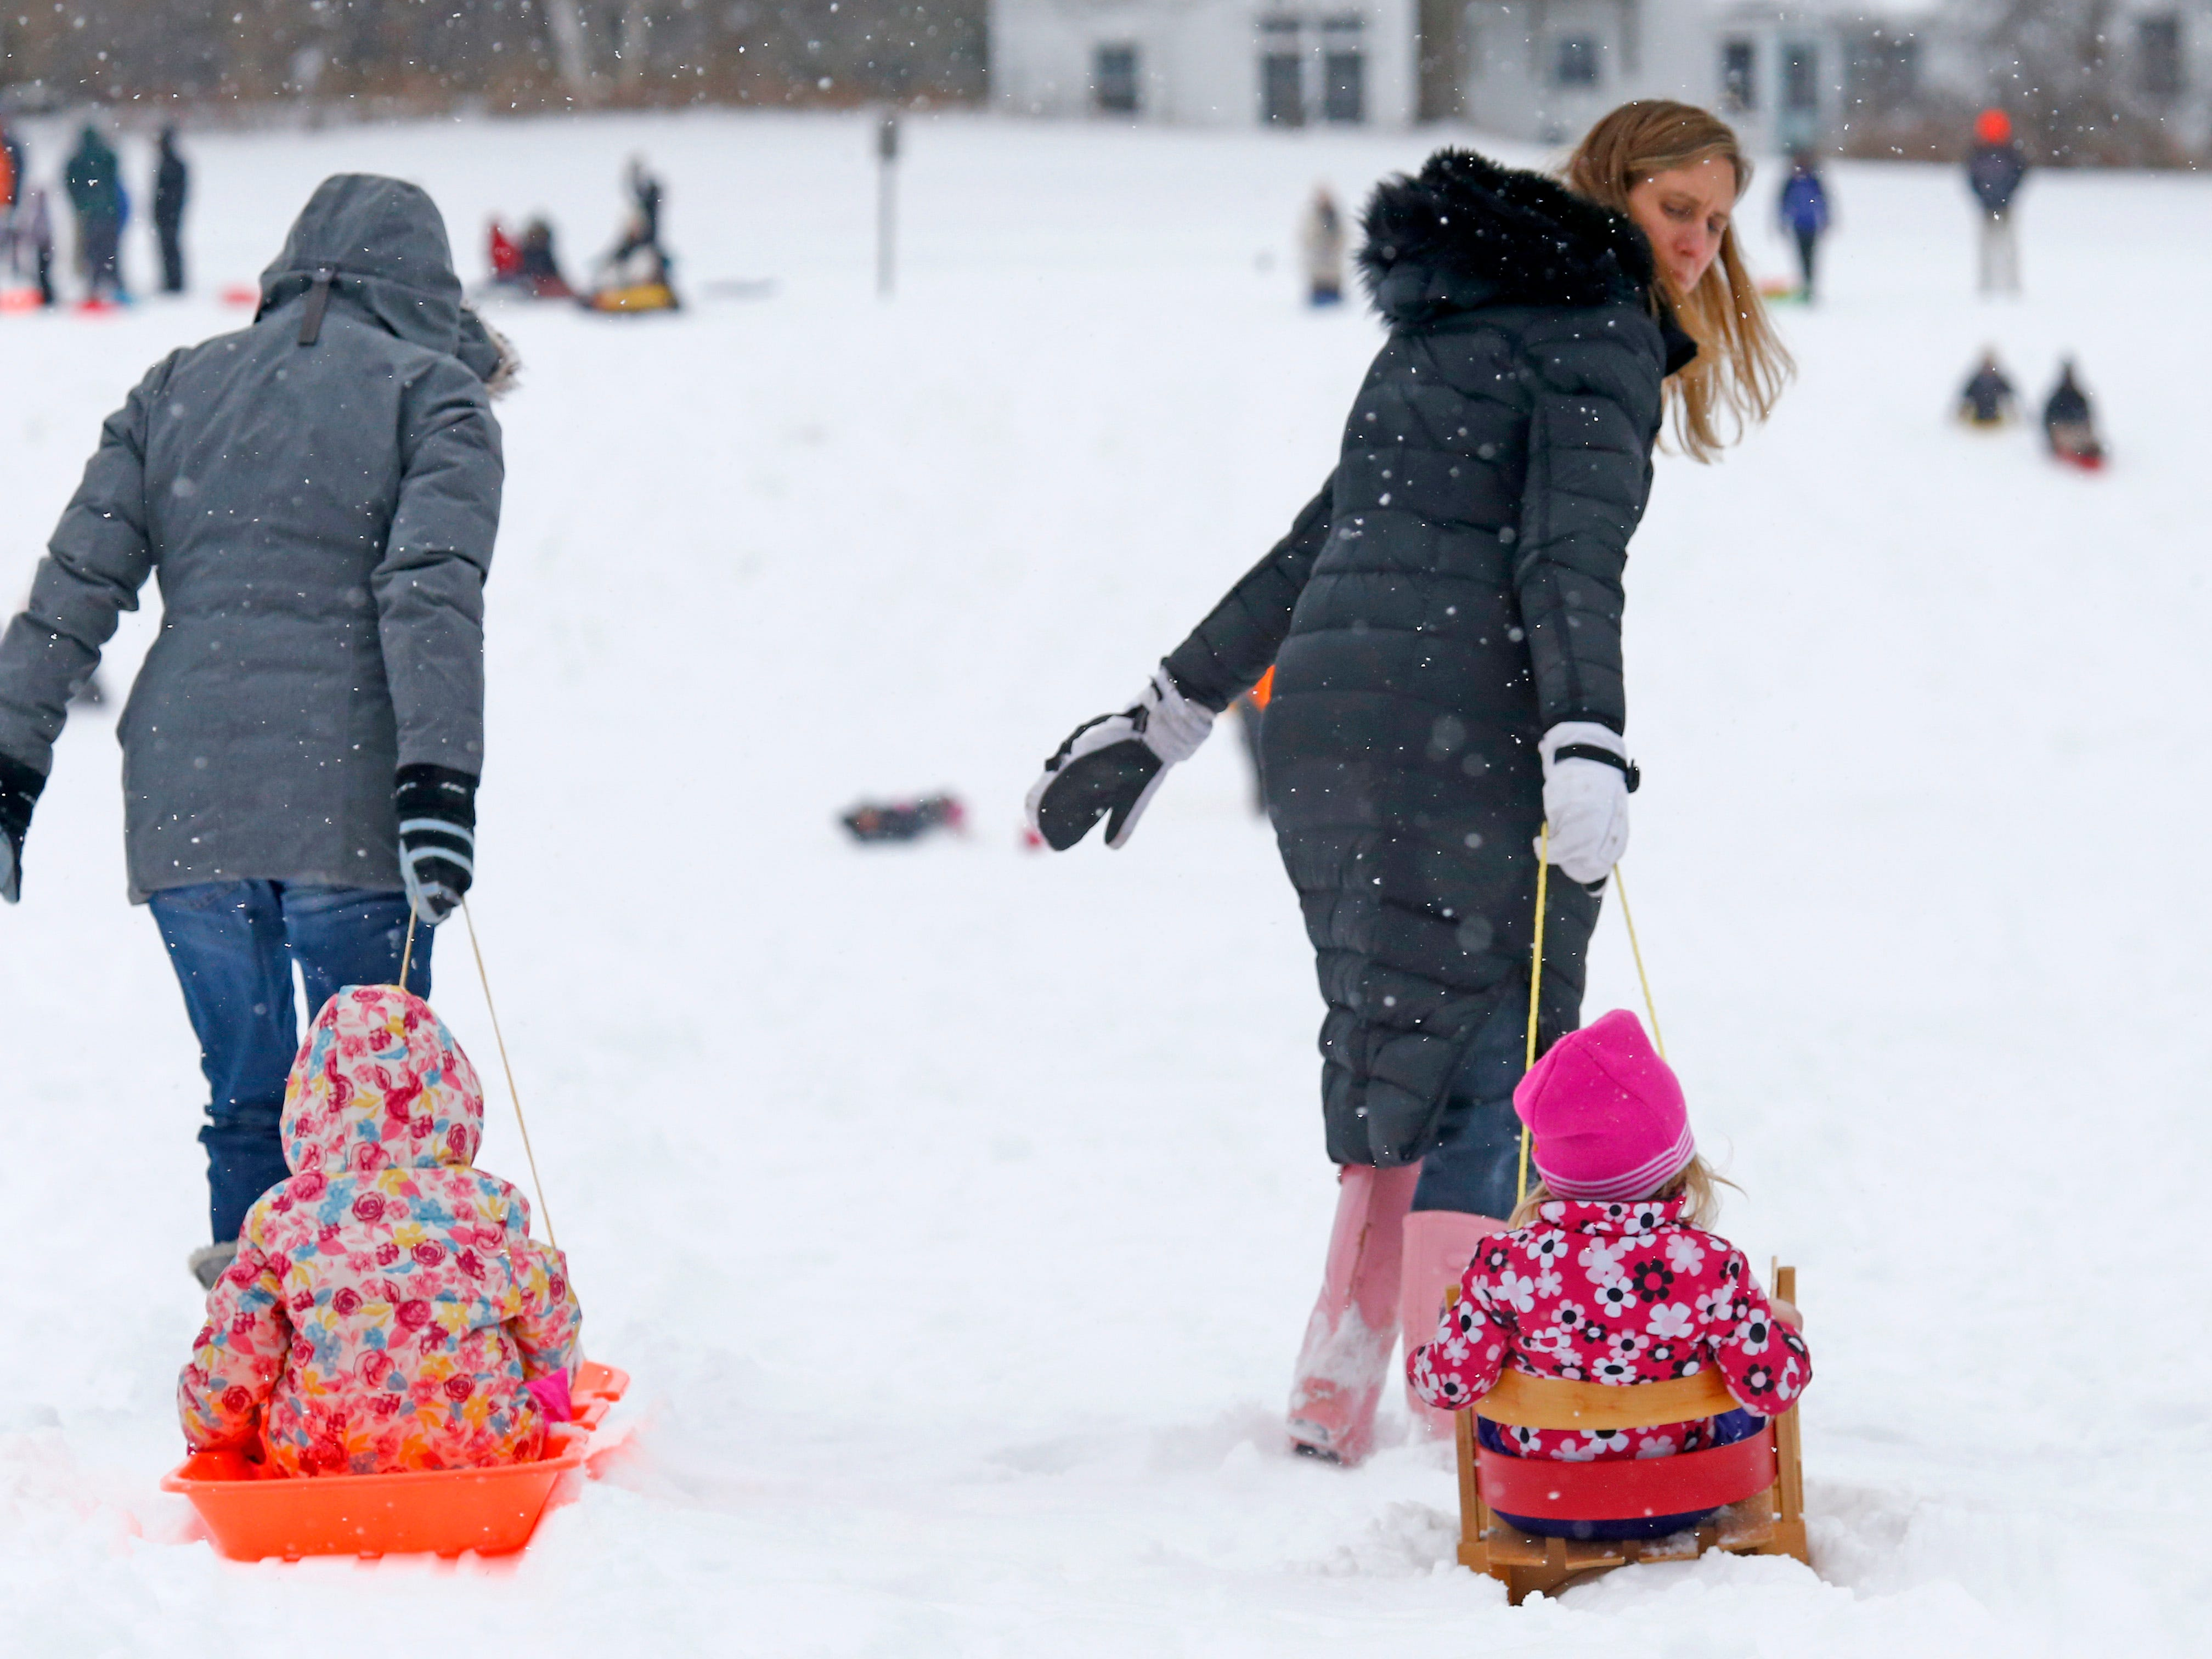 Families head out for sledding on the Wirth Park South hill in Brookfield after the first sledding snow arrived overnight on Jan. 19.